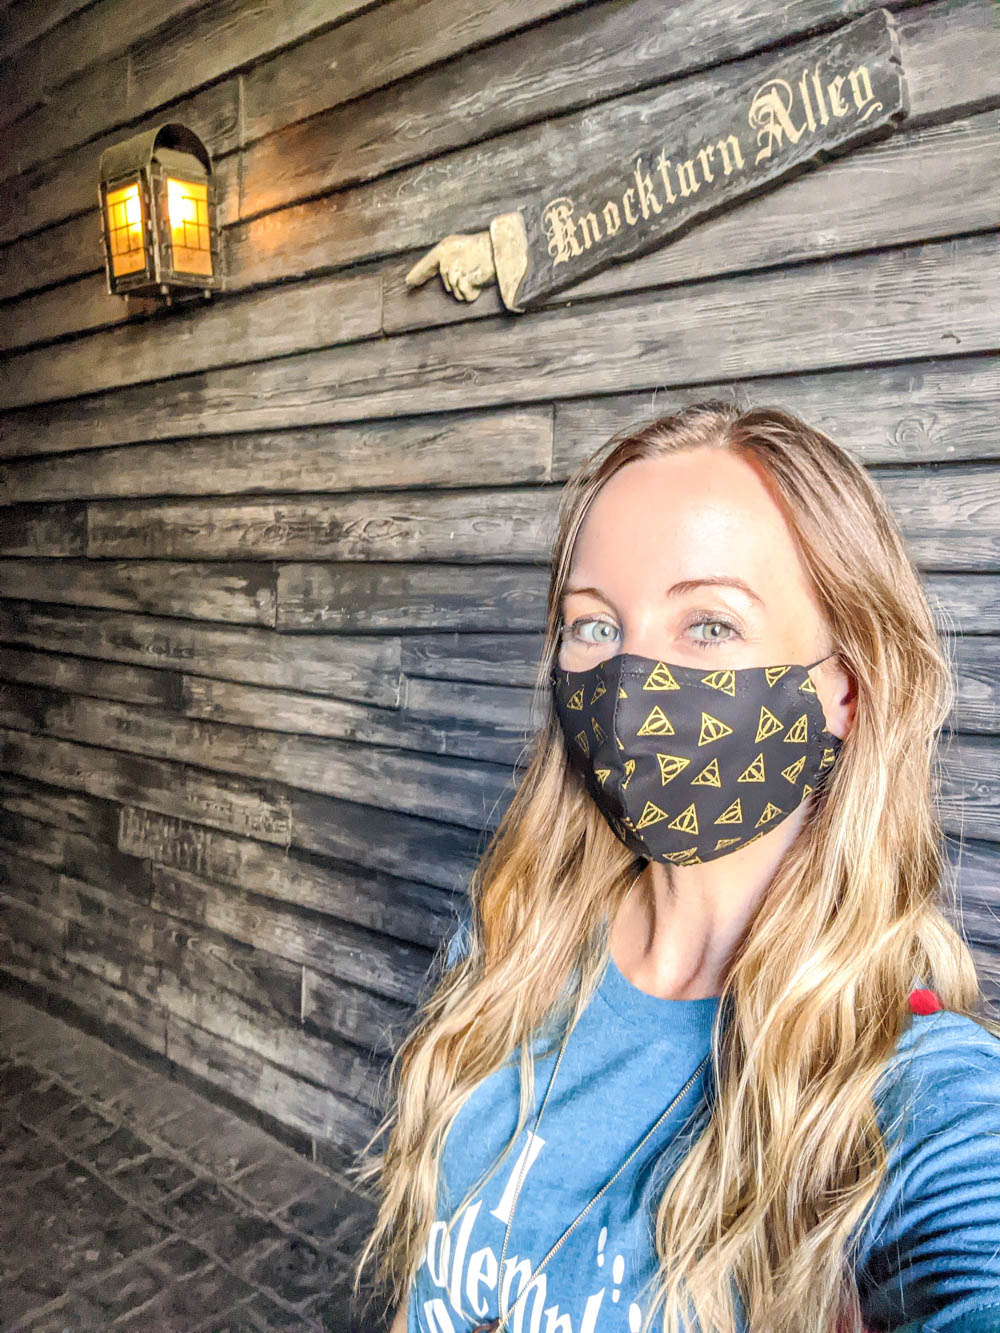 Me wearing a mask at Wizarding World of Harry Potter at Universal Orlando during the pandemic